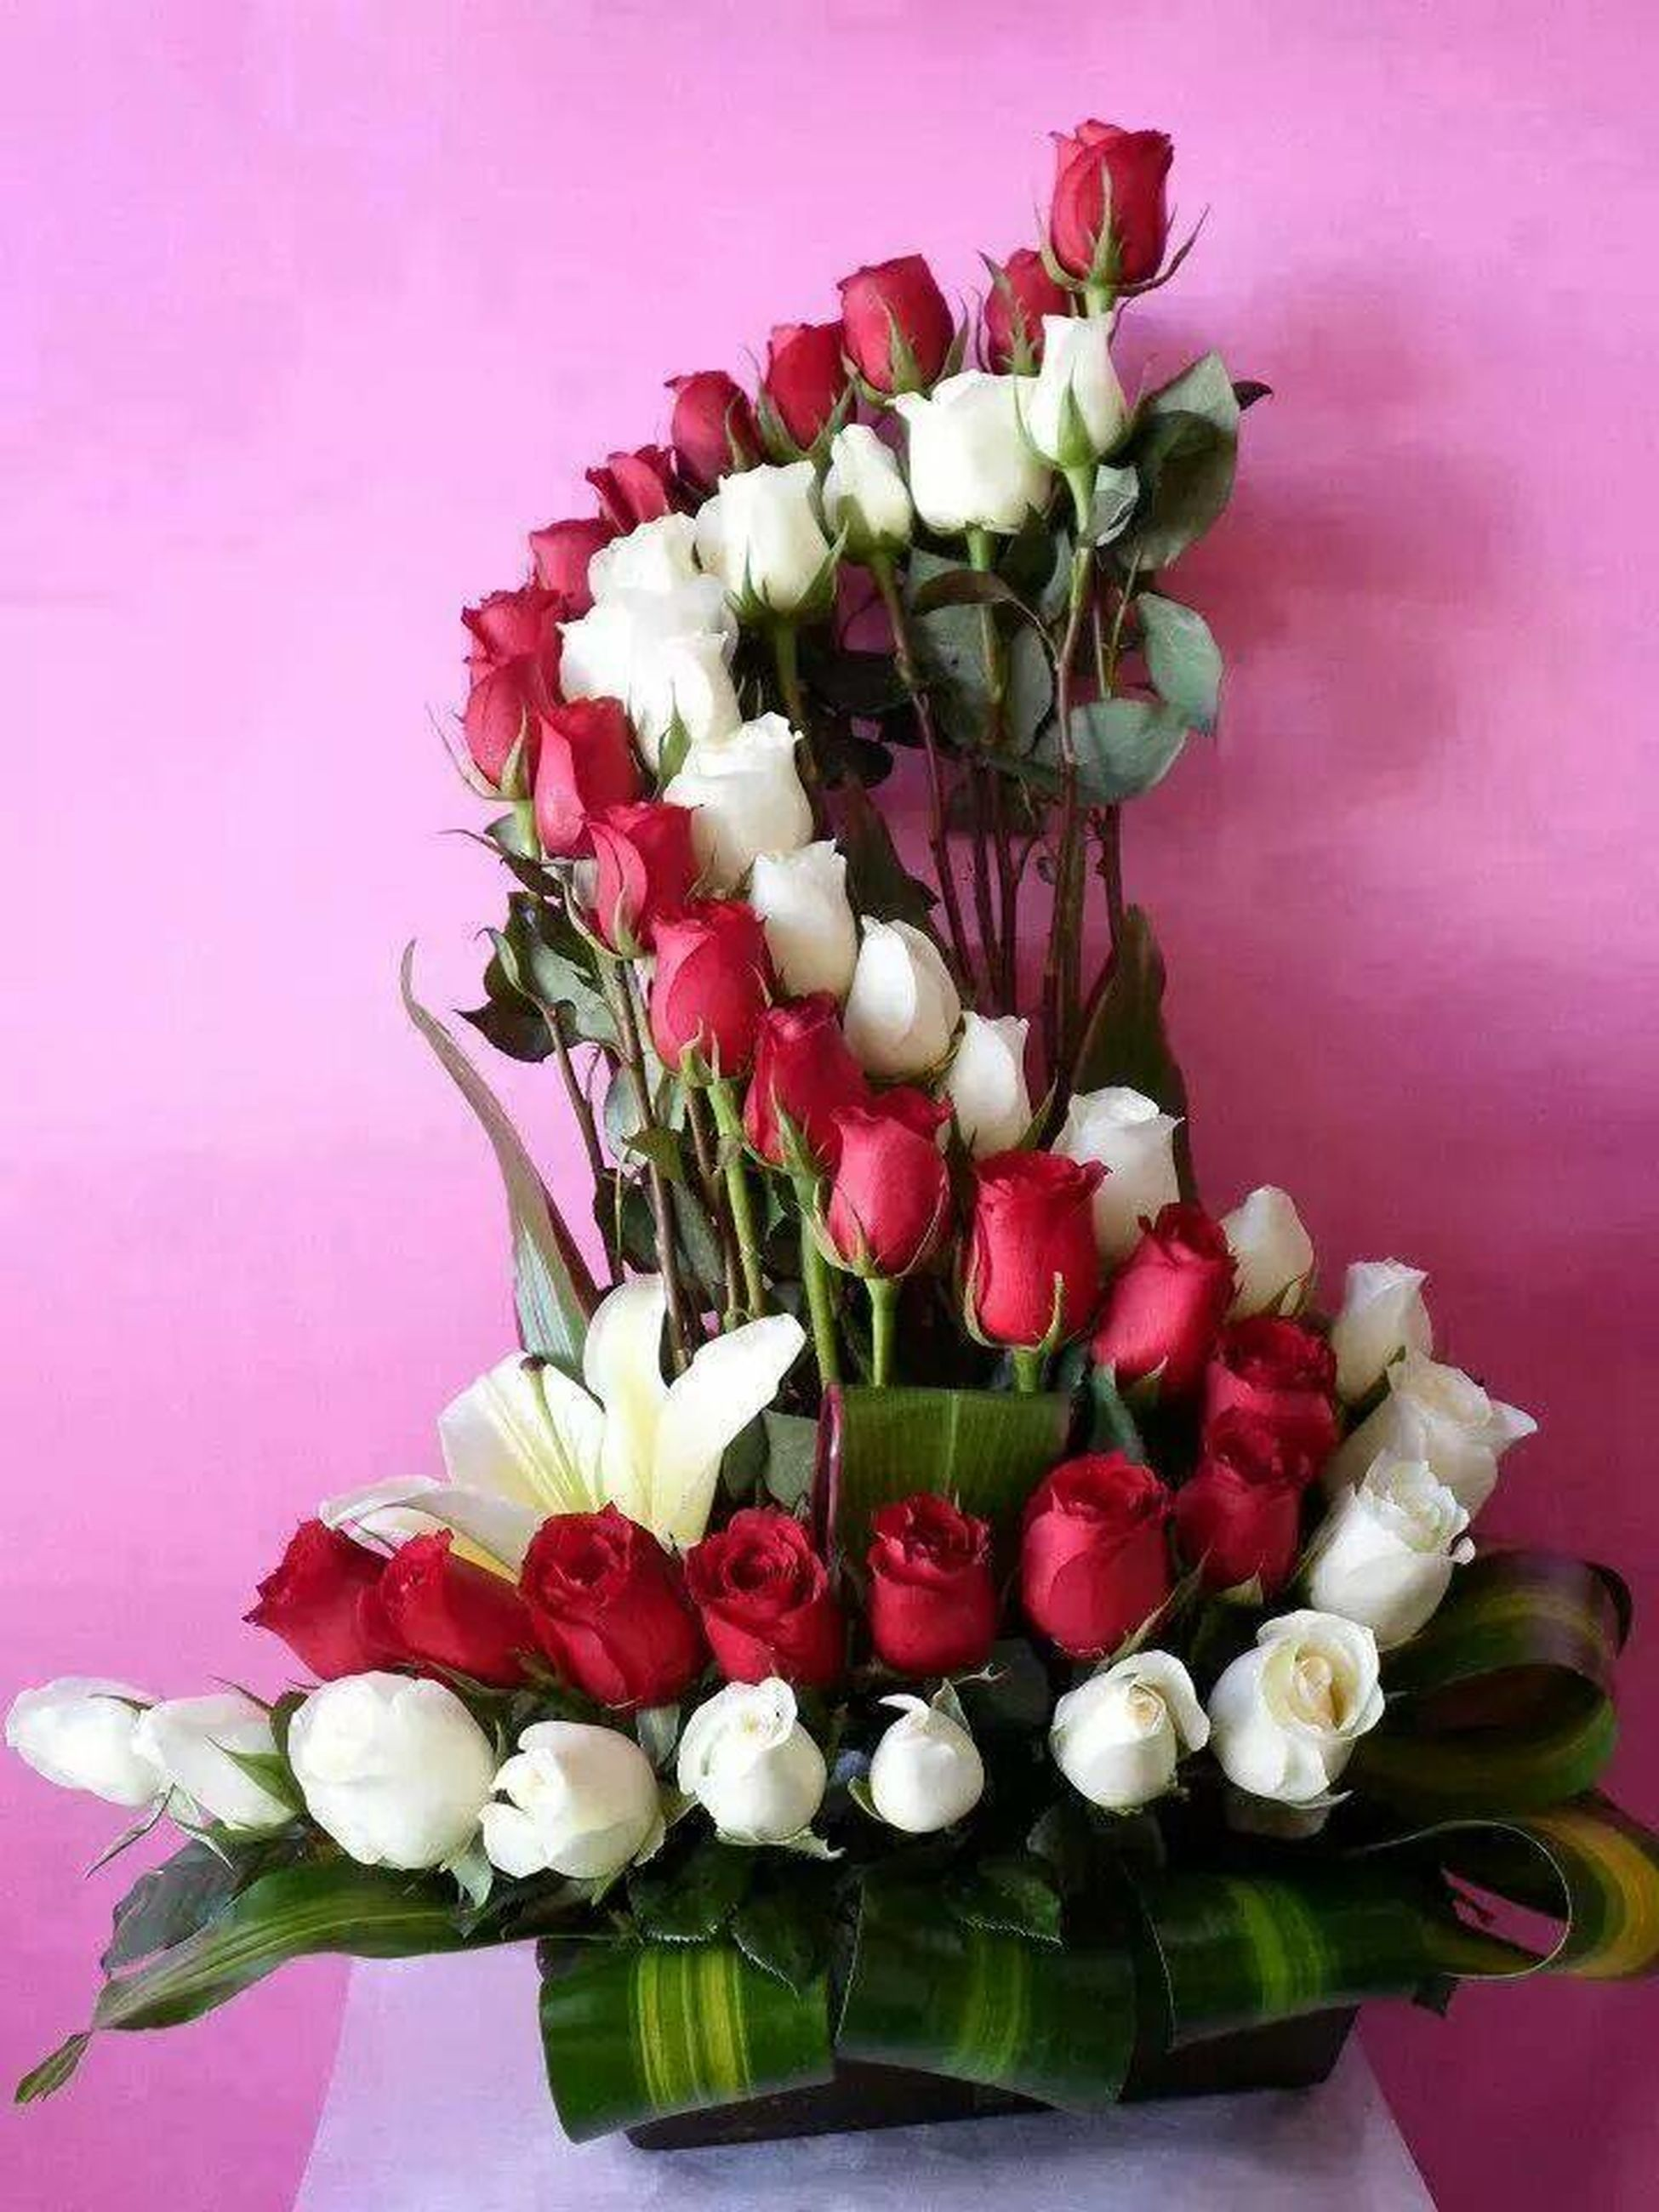 flower, freshness, fragility, petal, indoors, flower head, vase, beauty in nature, growth, pink color, tulip, plant, nature, leaf, decoration, potted plant, table, bouquet, wall - building feature, flower arrangement